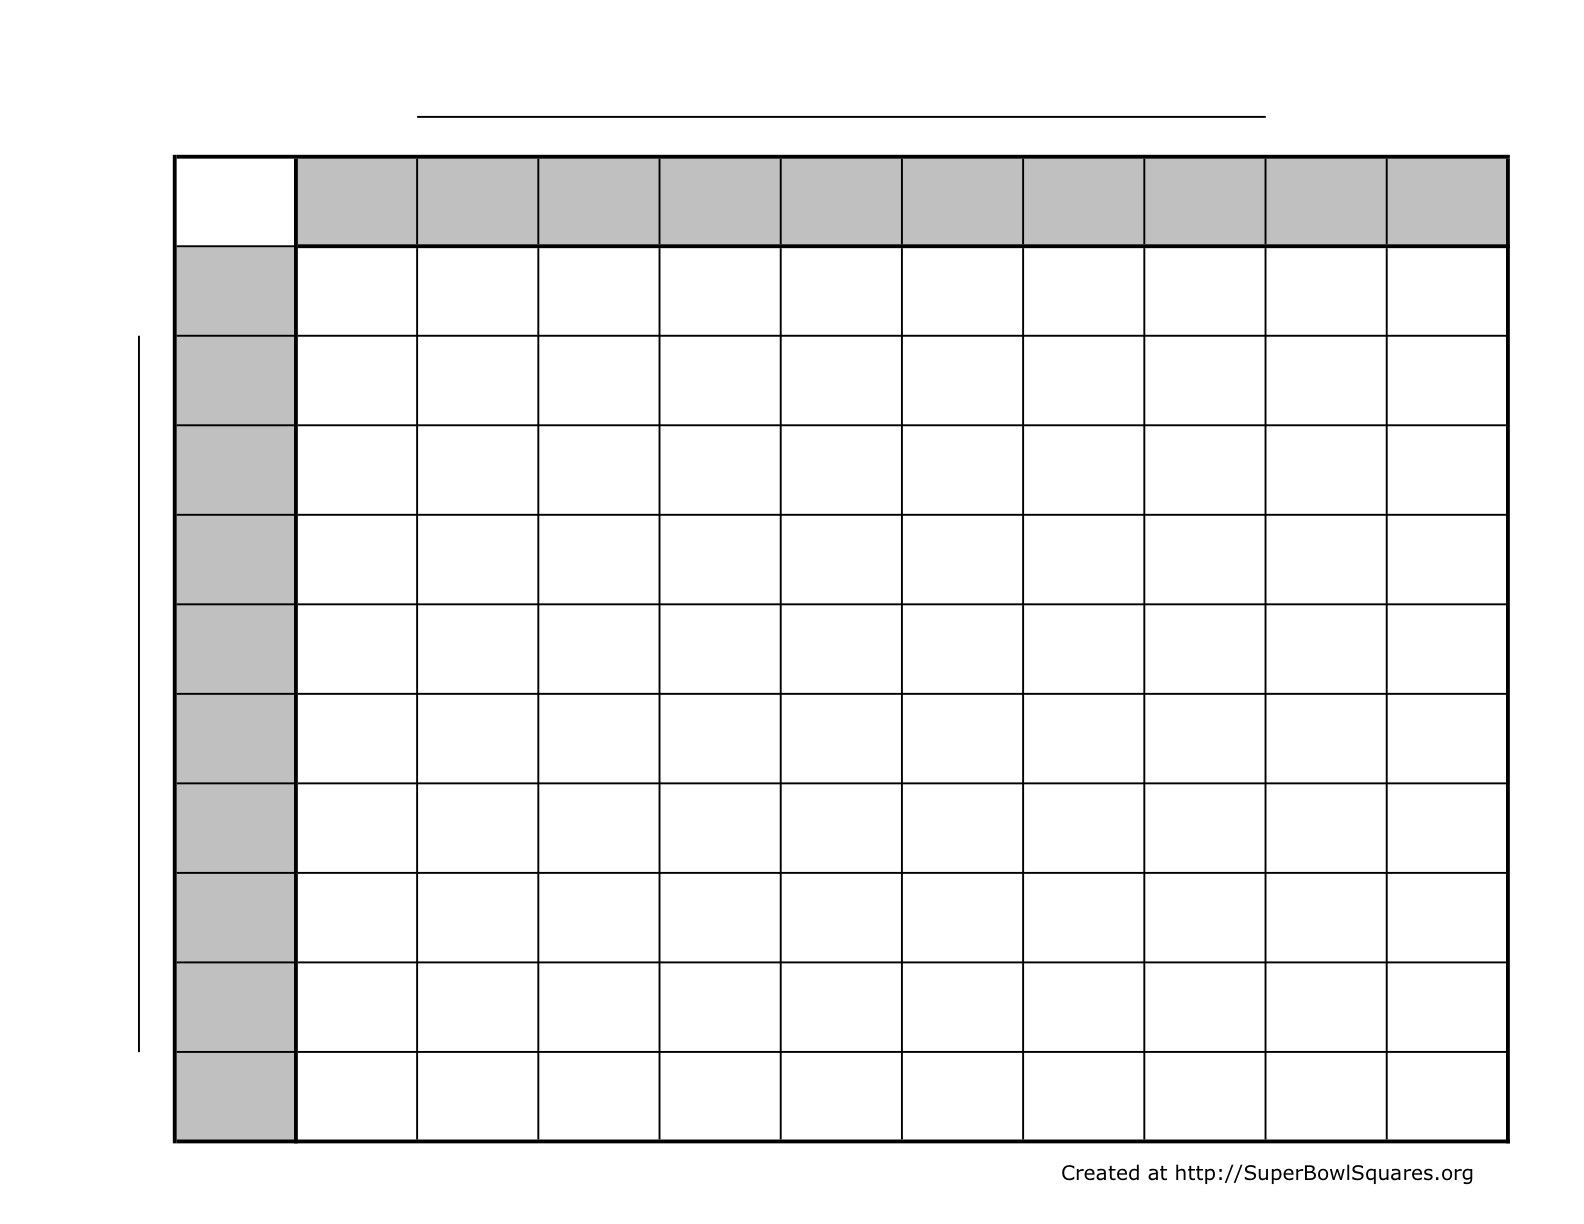 graphic regarding Superbowl Boards Printable named Soccer Squares Template Printable - Pauls Residence Artists